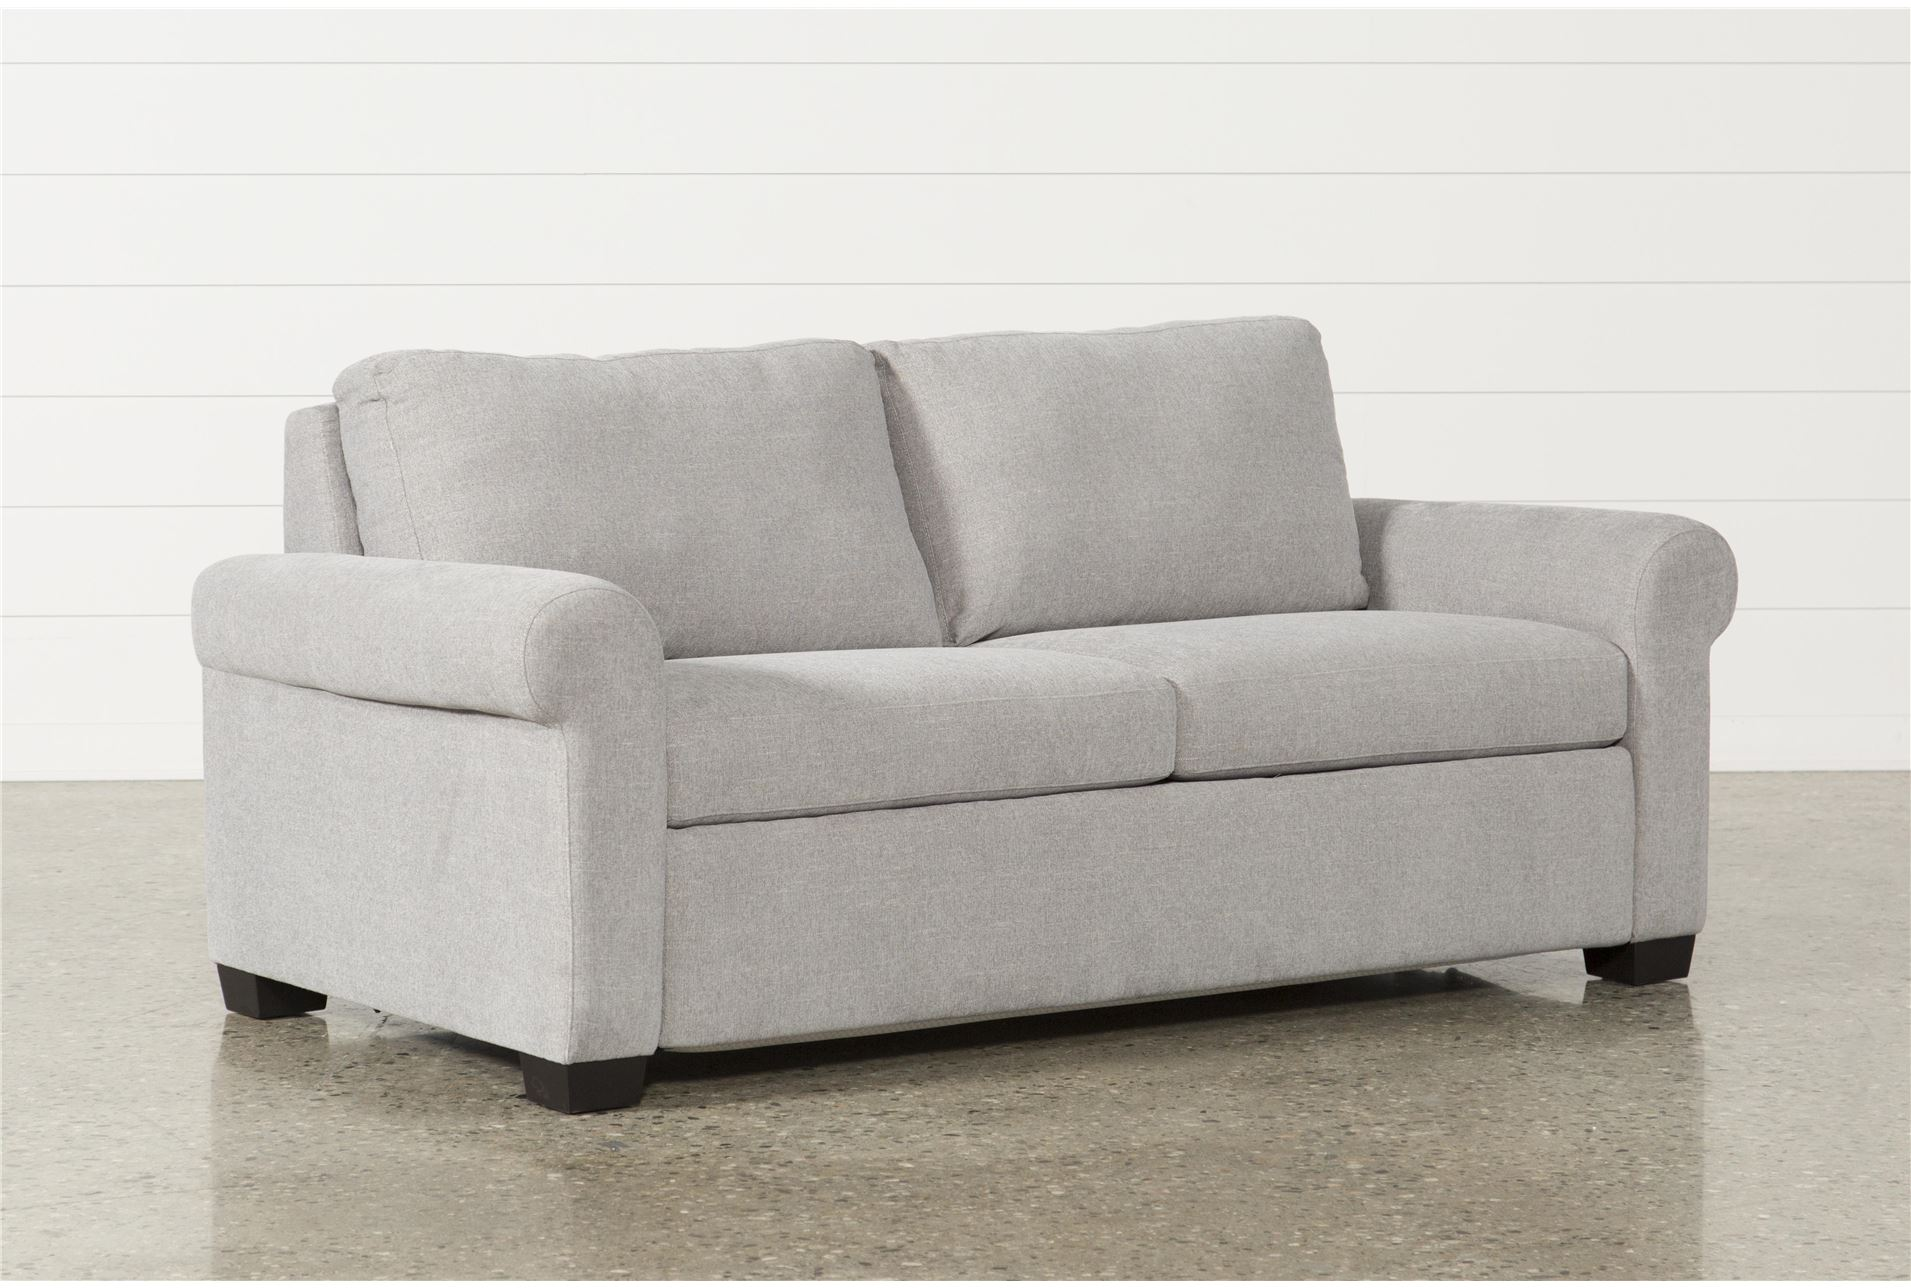 alexis silverpine queen sofa sleeper living spaces rh livingspaces com IKEA Sofa Beds for Small Space Space Saver Sofa Beds